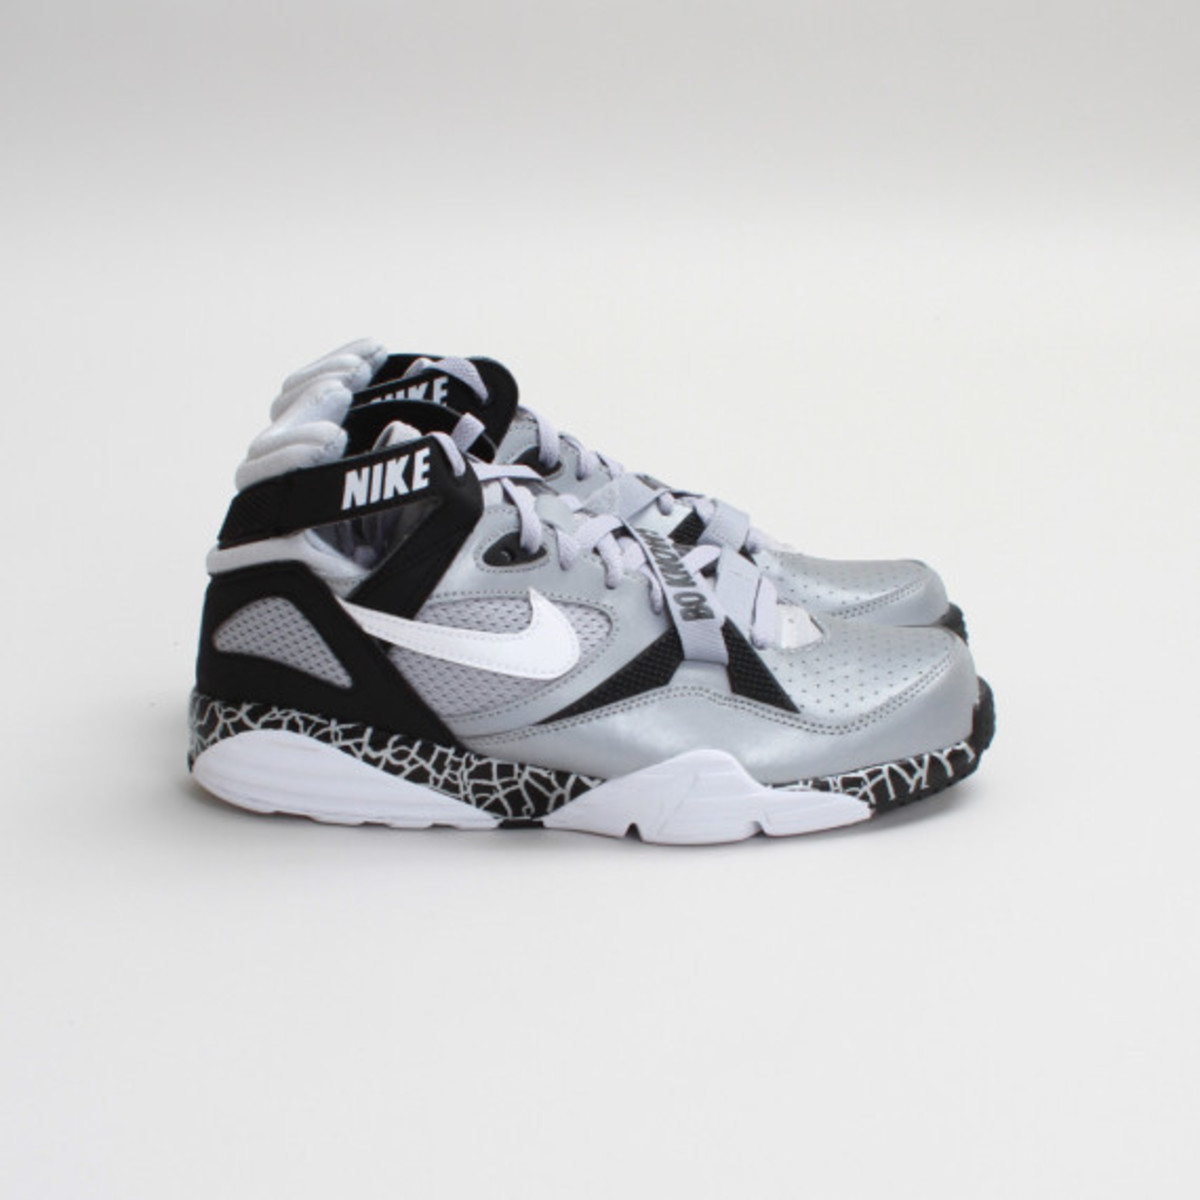 nike-air-trainer-max-91-bo-knows-5